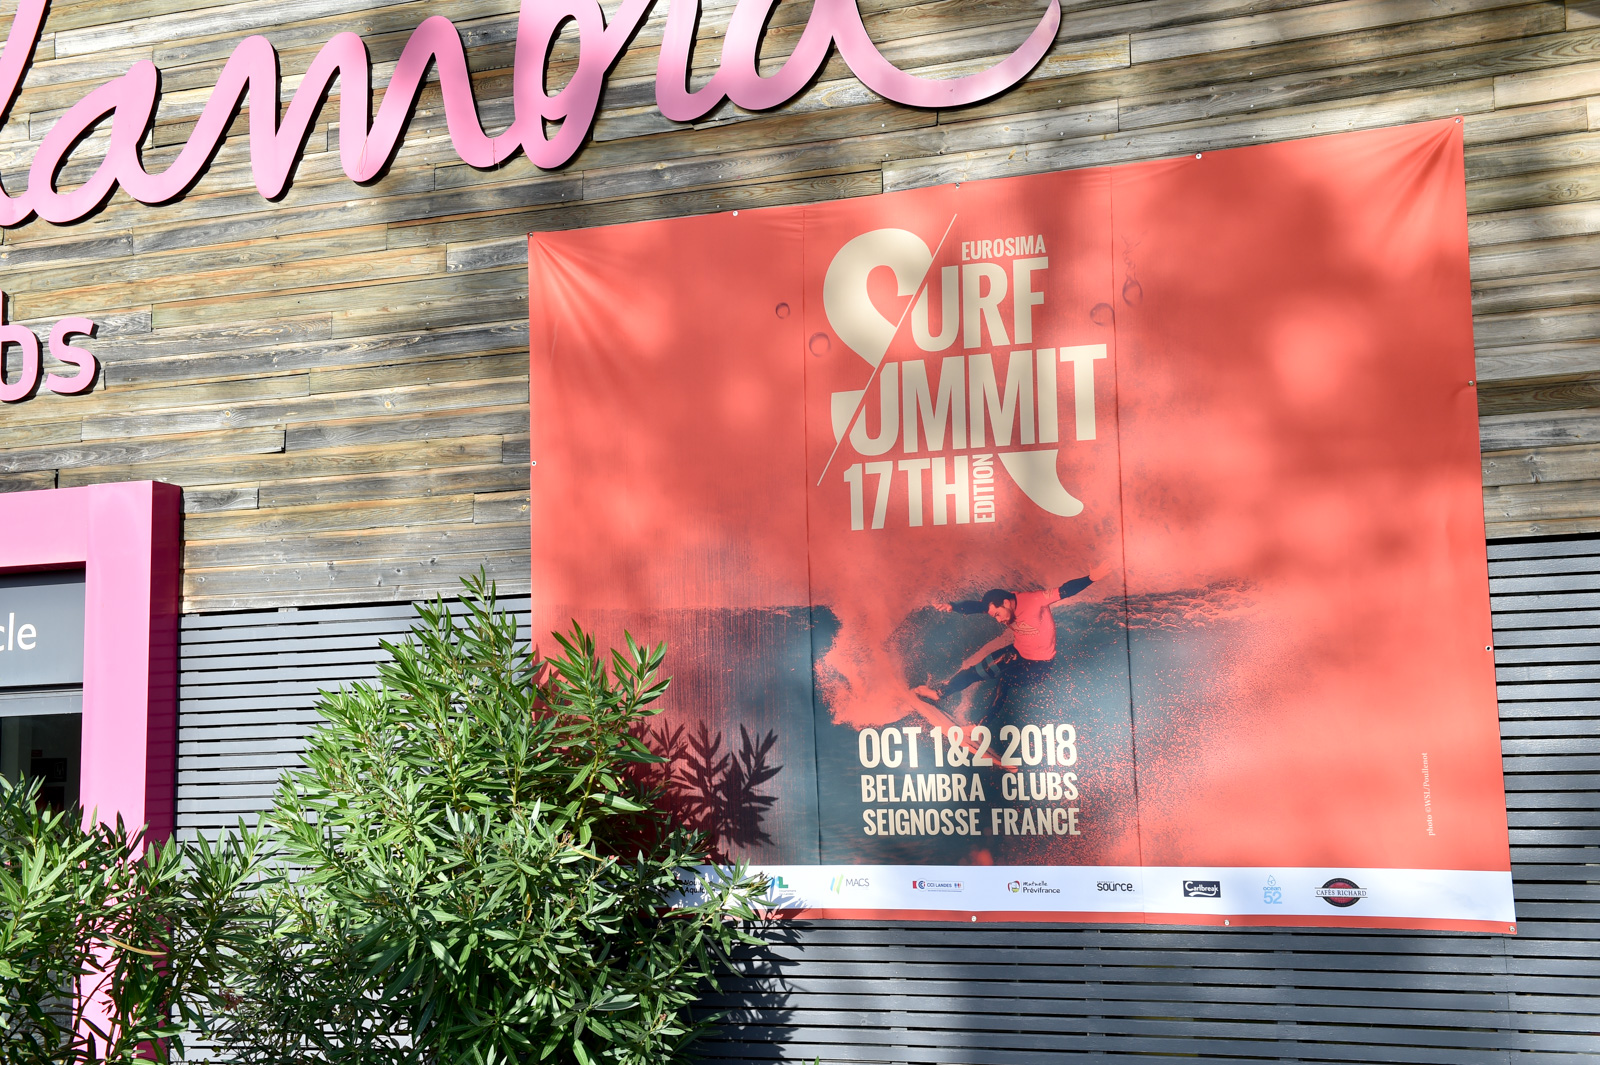 1 Surf Summit, Eurosima's Annual surf conference